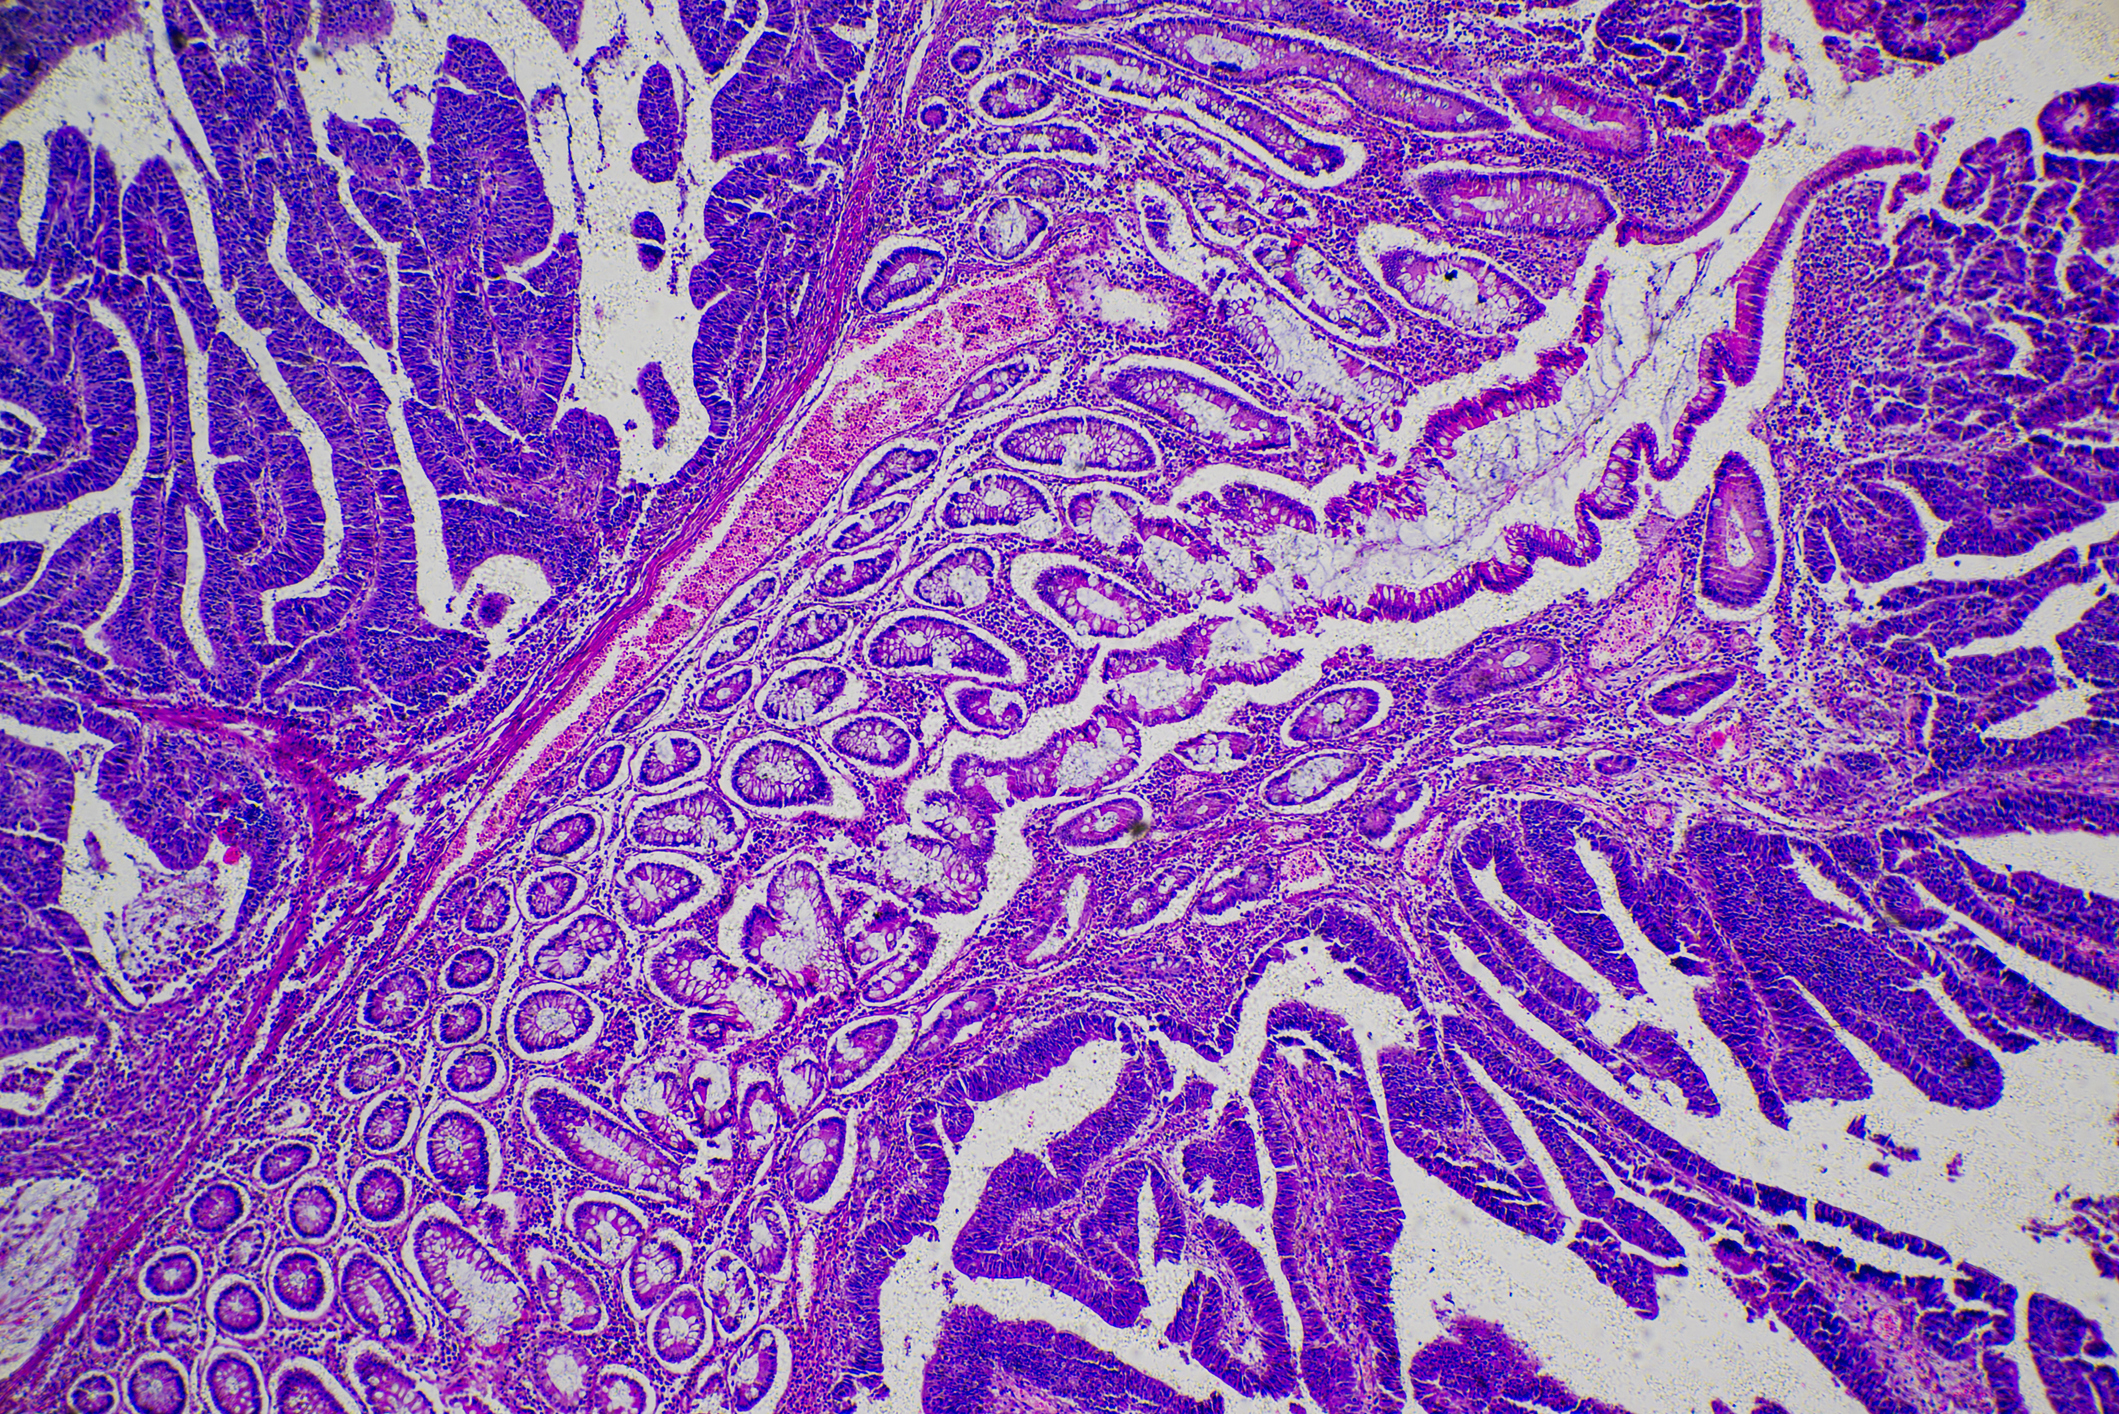 adenocarcinoma of human tumor tissue micrograph (Getty Images)